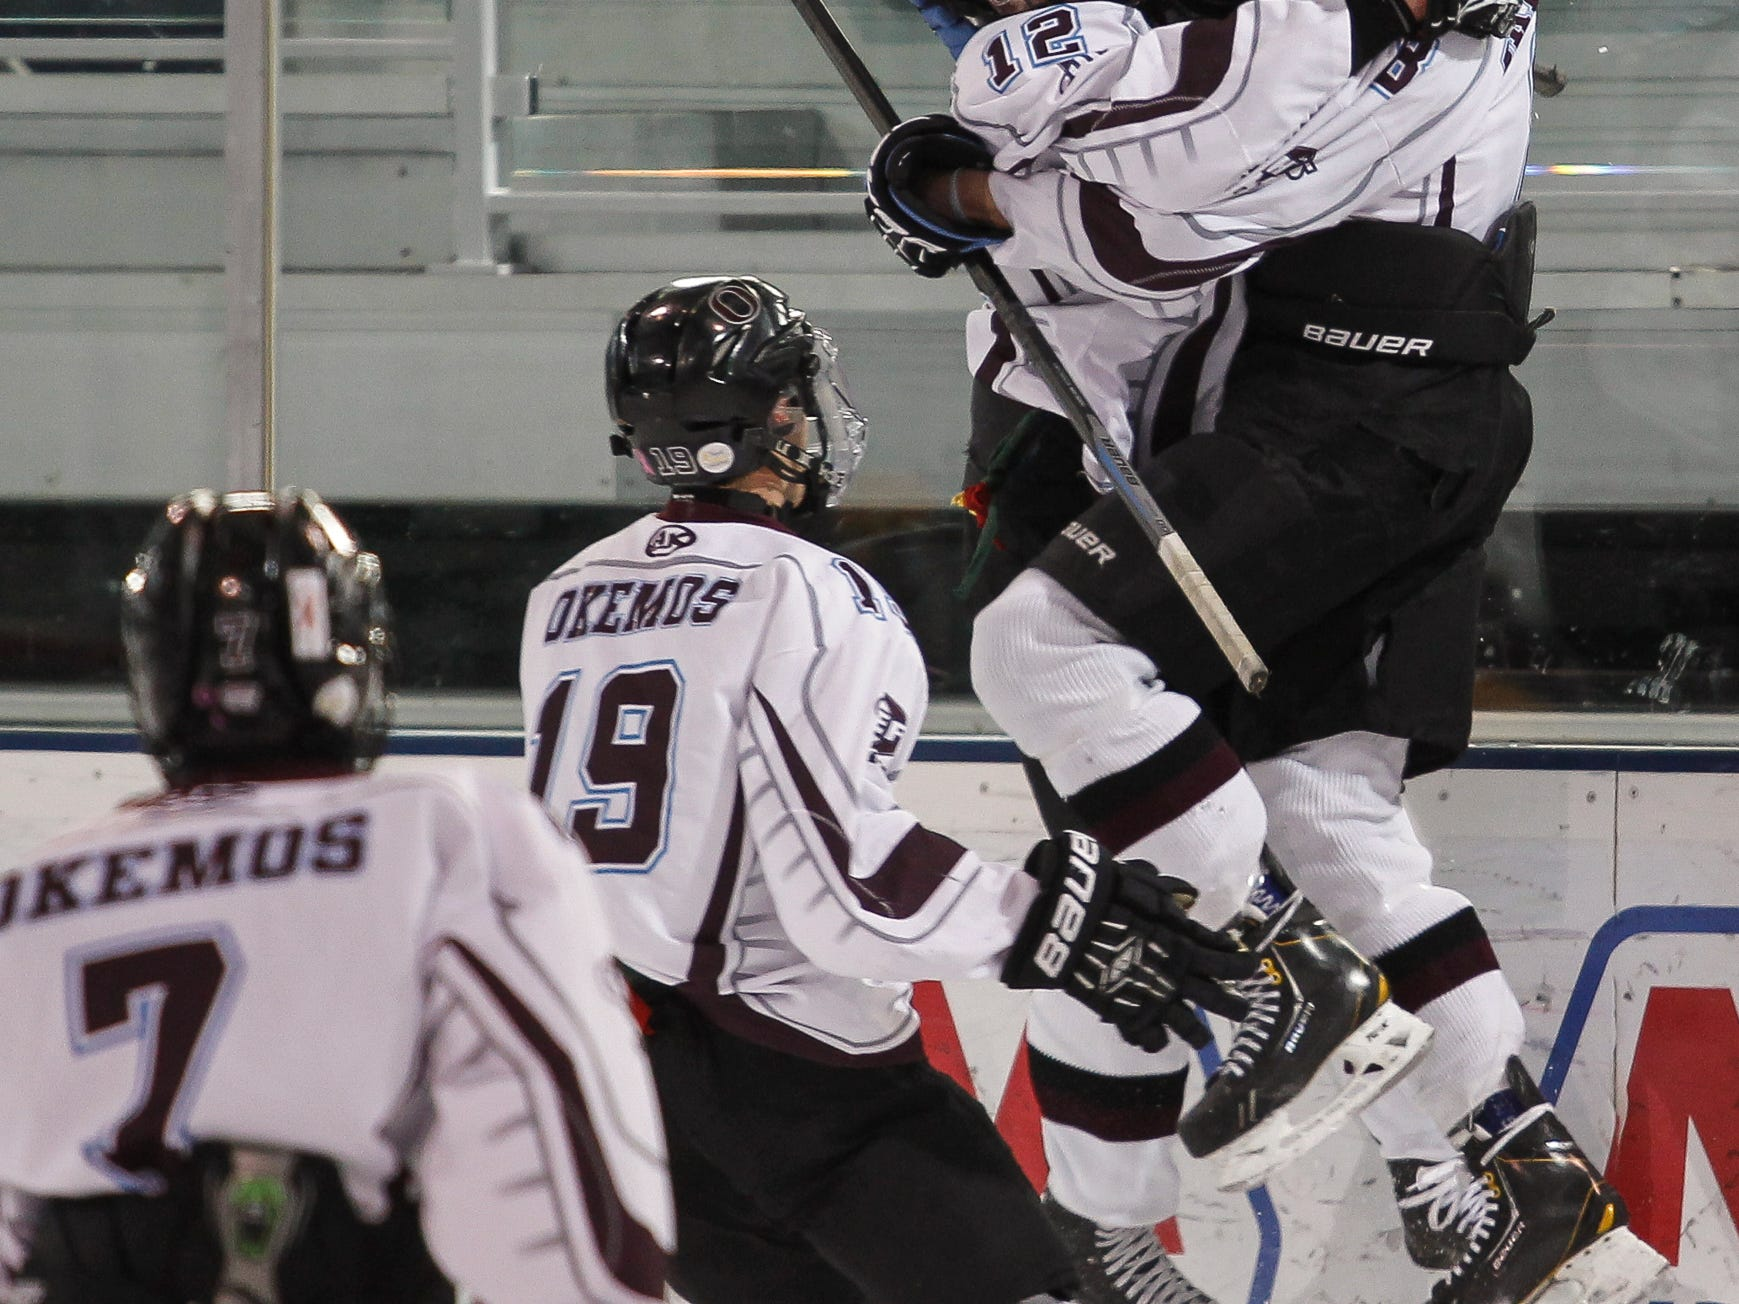 Okemos' Jake Faustyn, right, celebrates a goal with teammates during the Division 3 quarterfinals last month.